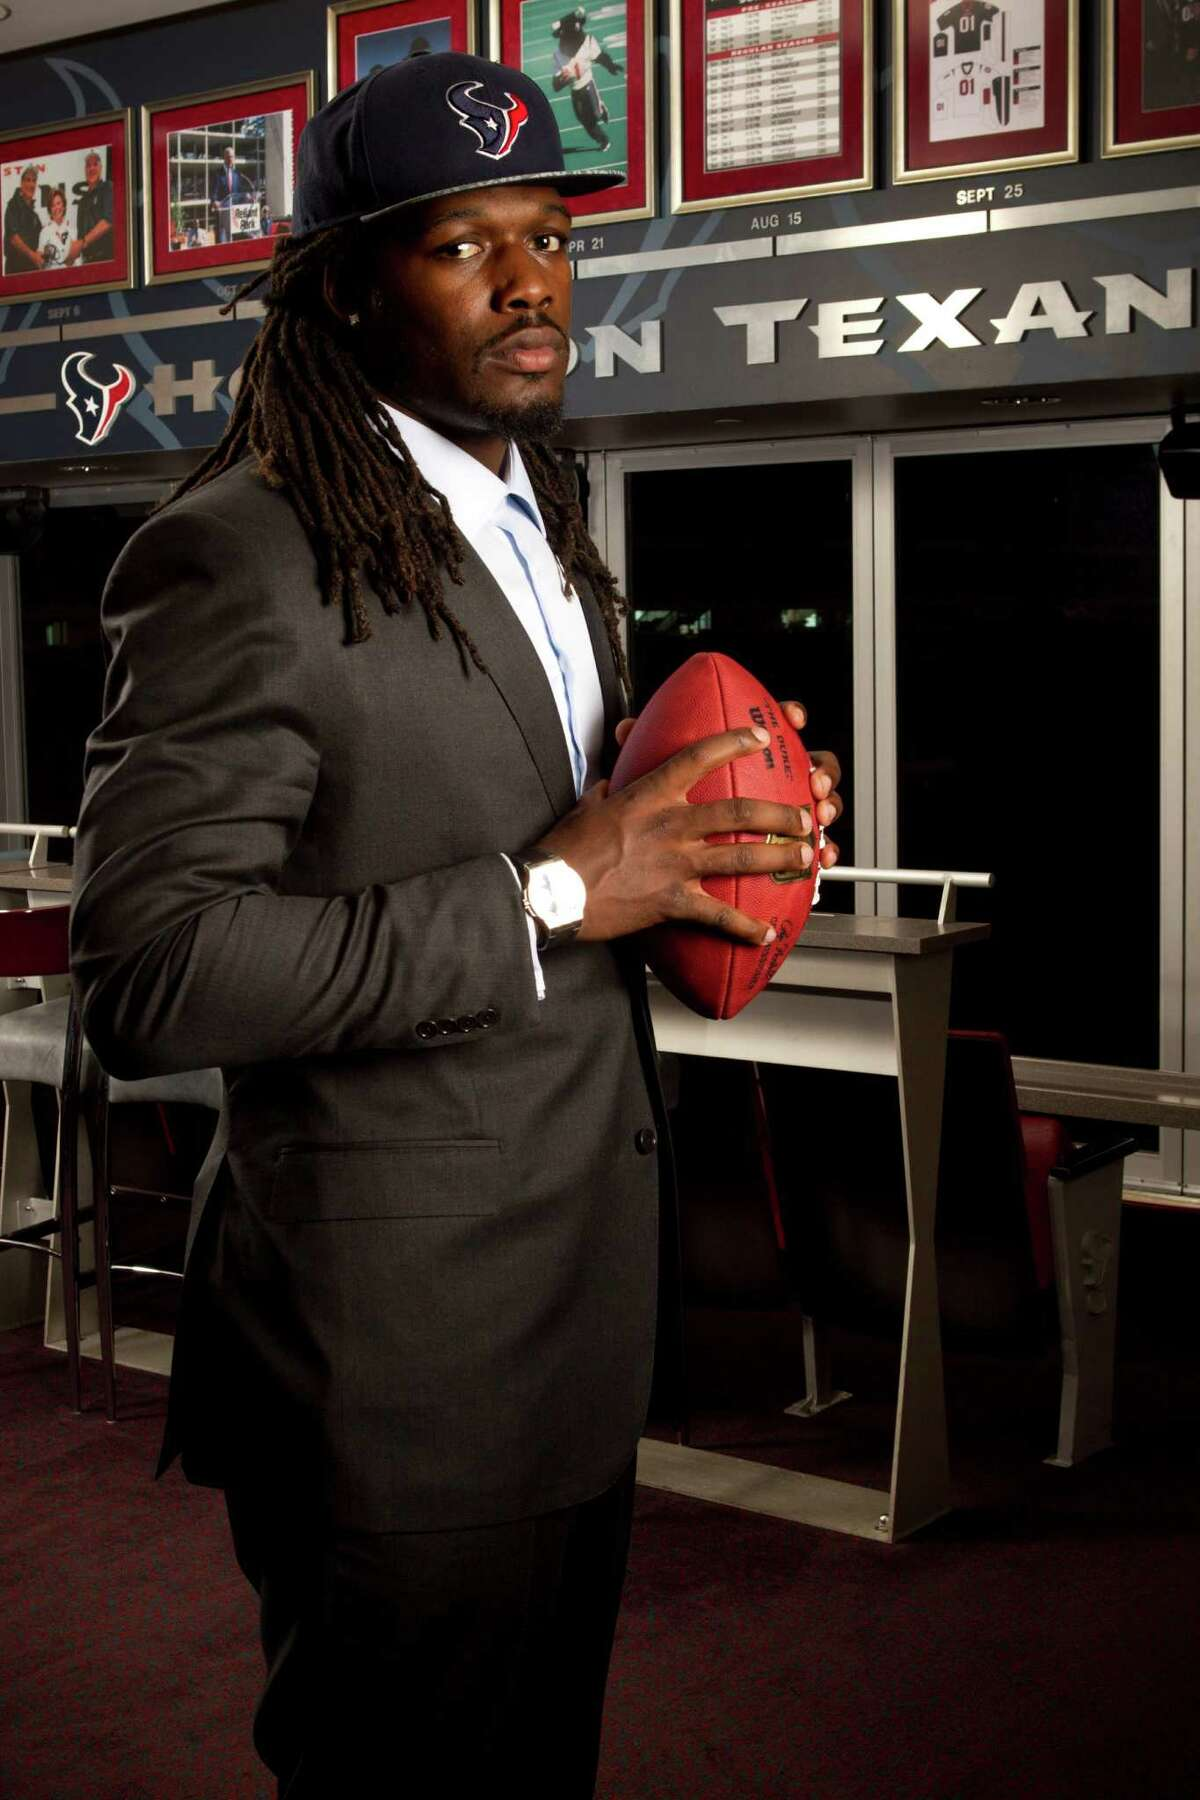 Jadeveon Clowney, Texans (2014-present) His name often is a catalyst for words - many of them unkind - from fans frustrated from his inability to stay healthy during his first two seasons after being drafted first overall.He'll need to have a big season in 2016 to get them off his case